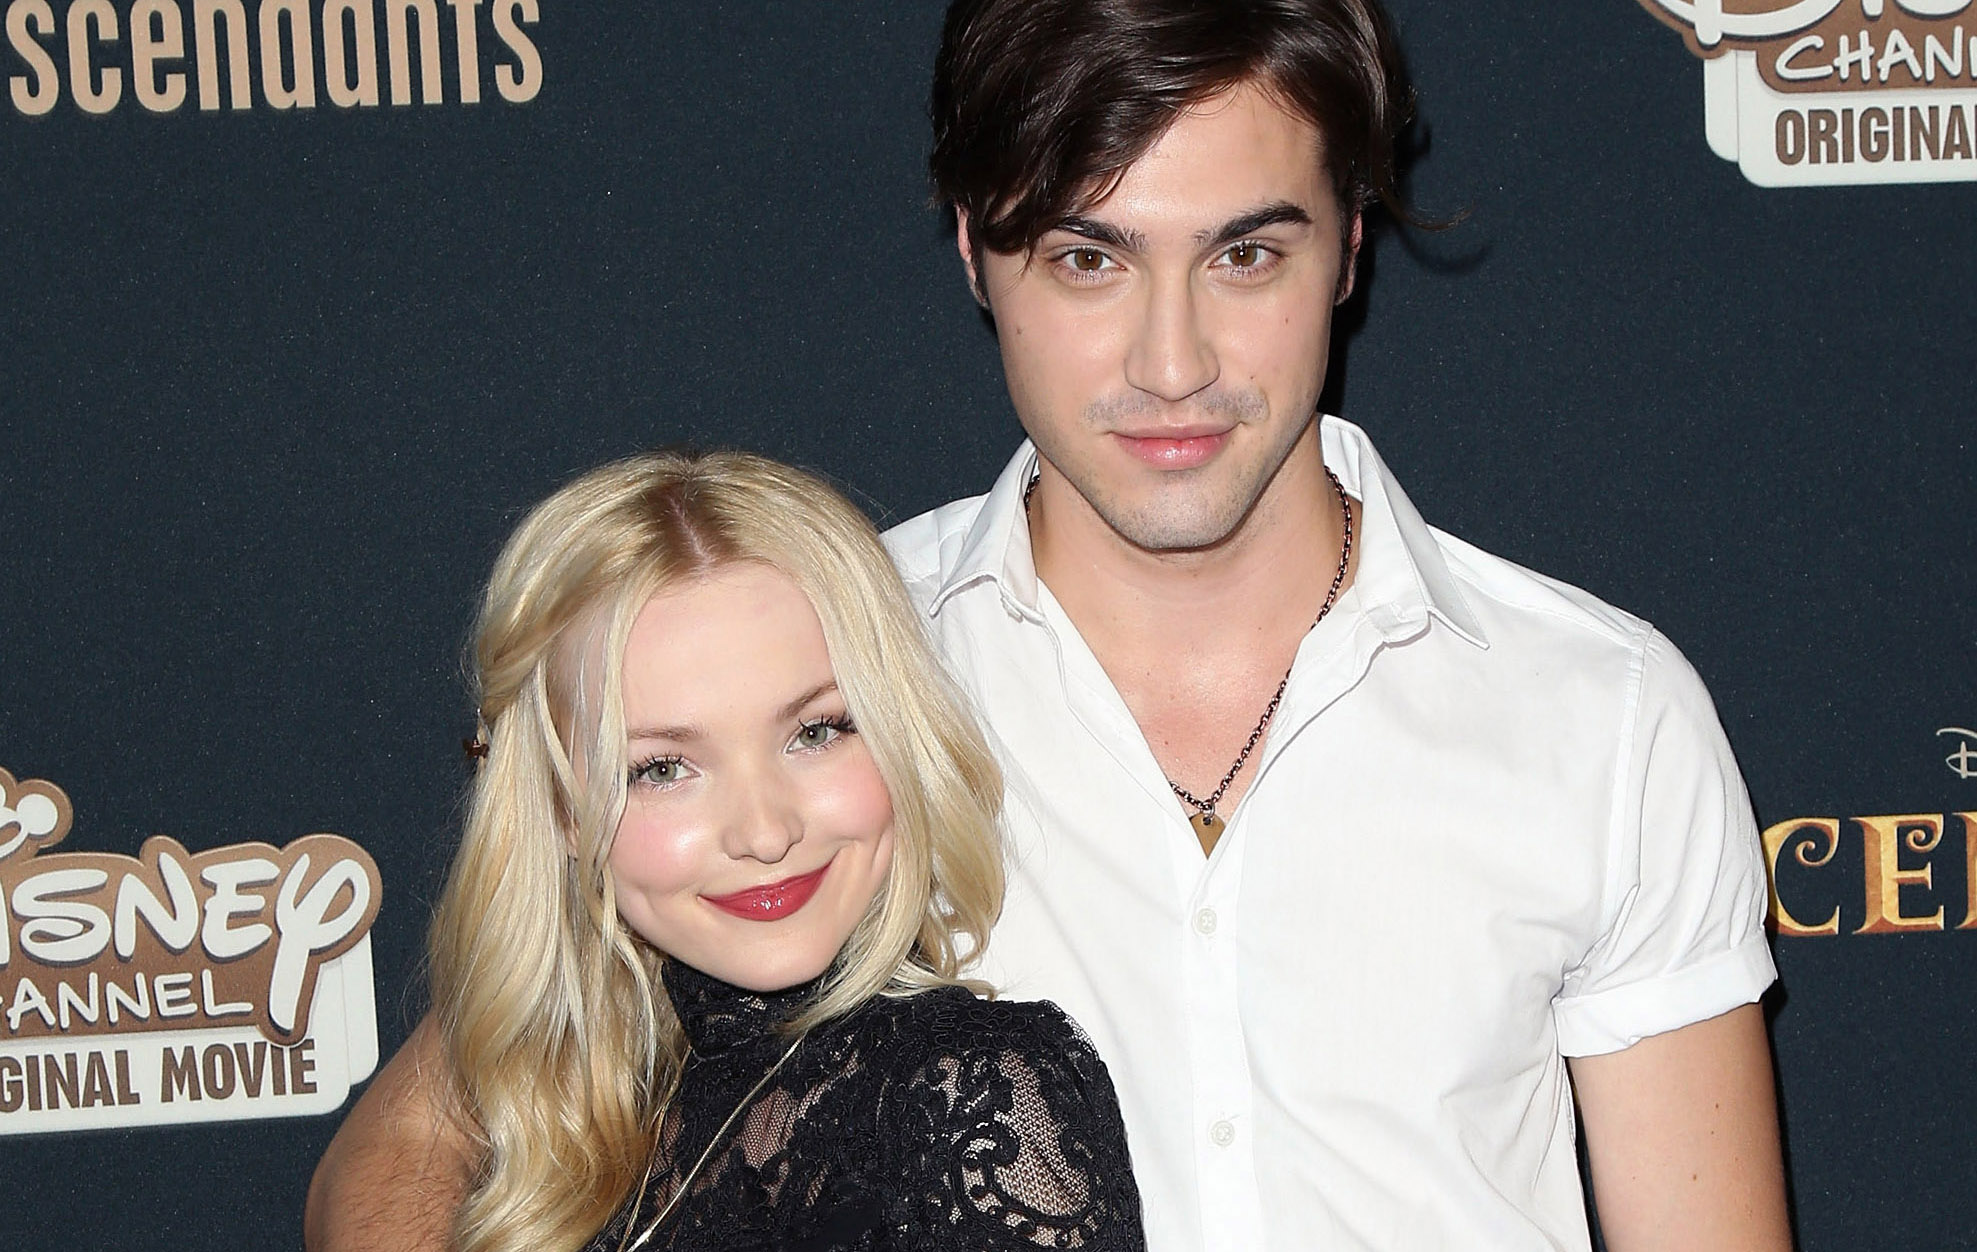 Dove Cameron and Ryan McCartan: Relationship Timeline